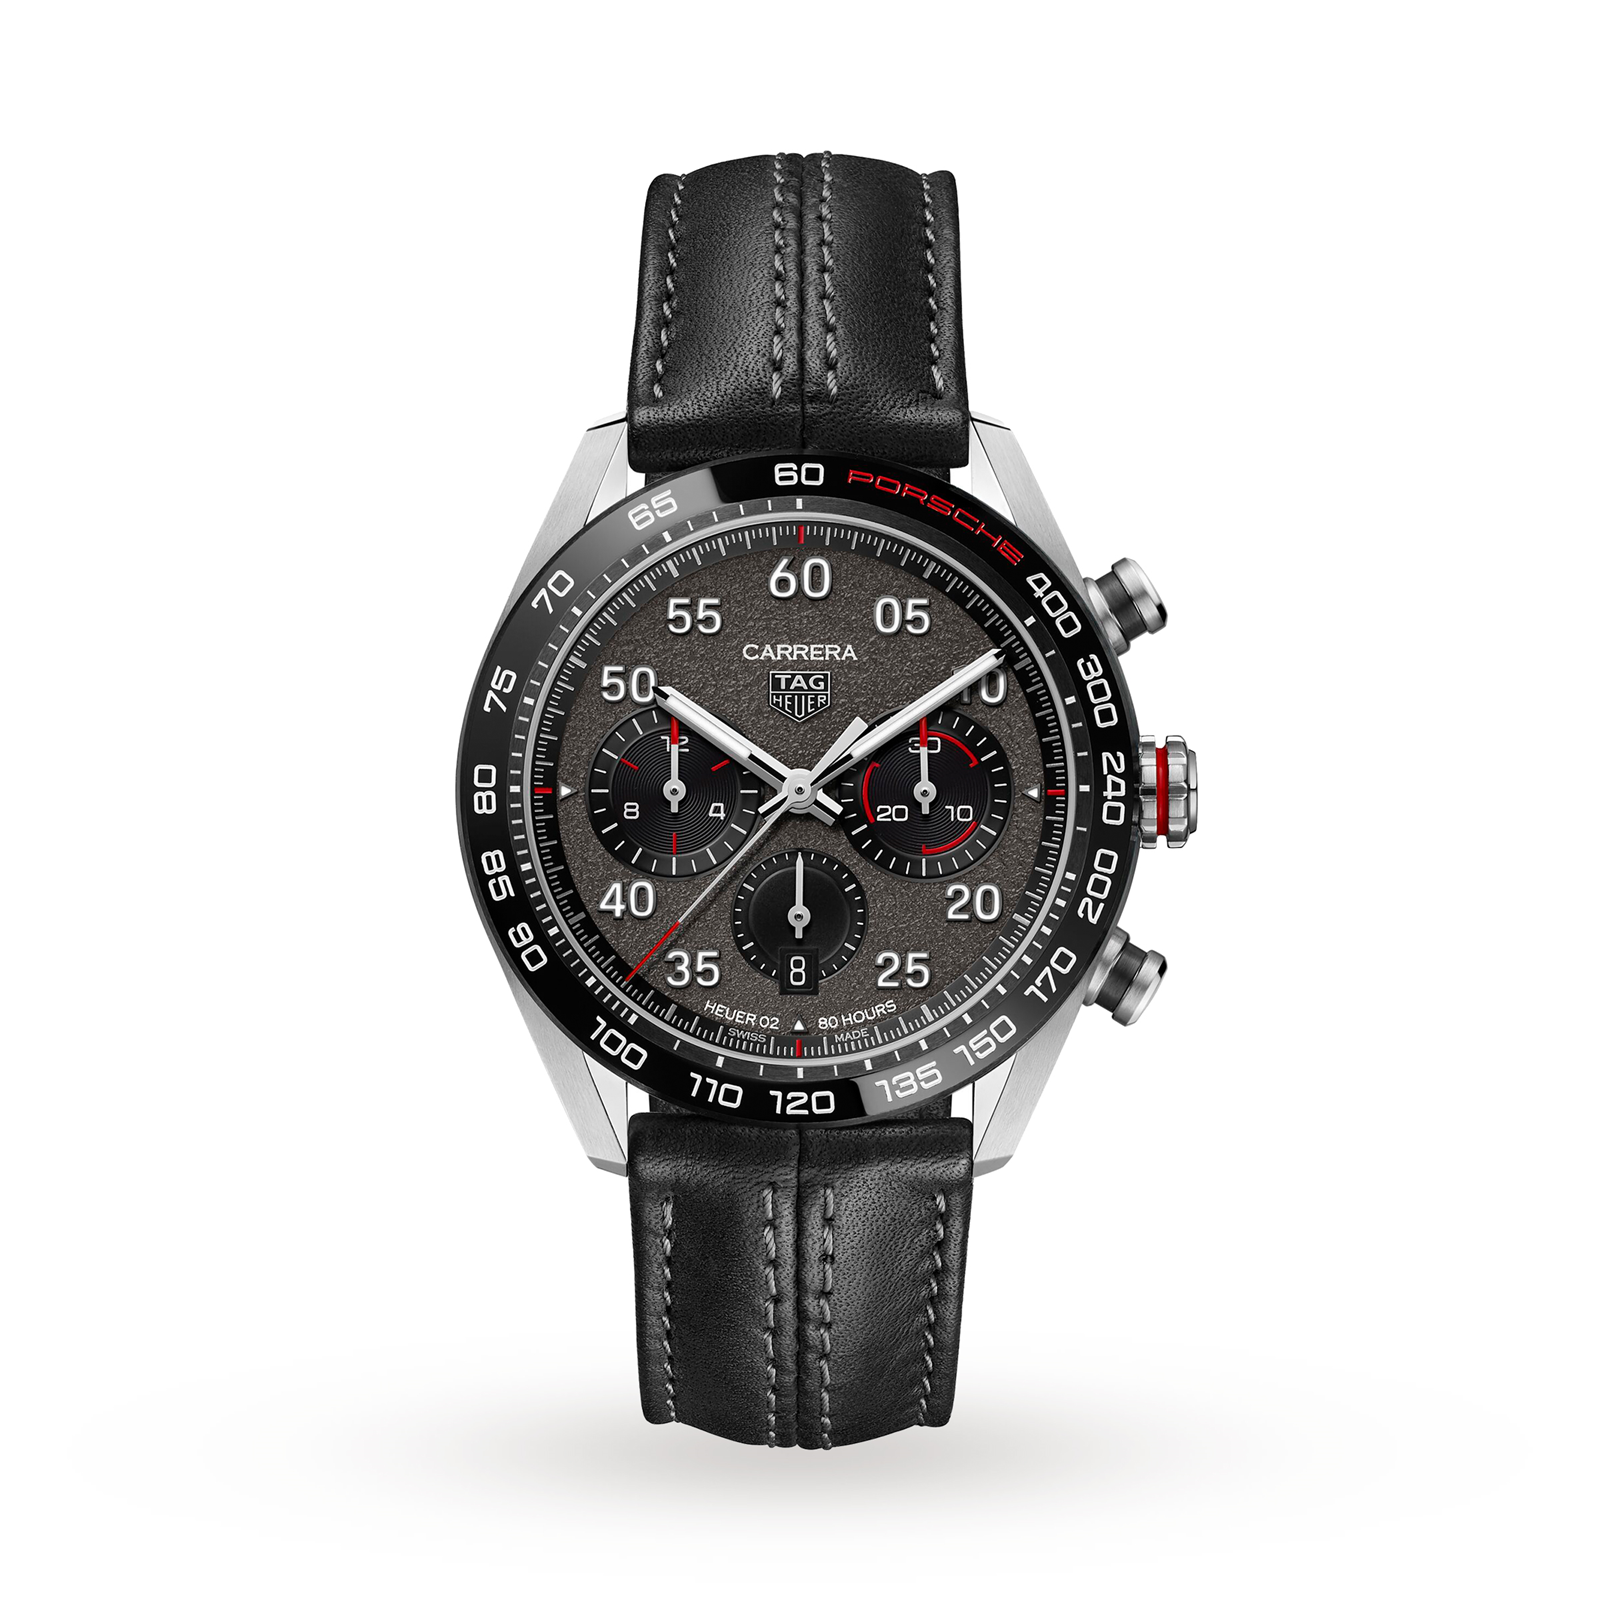 TAG Heuer Carrera Porsche Chronograph Special Edition <br> 44 mm Caliber Heuer 02 Automatic